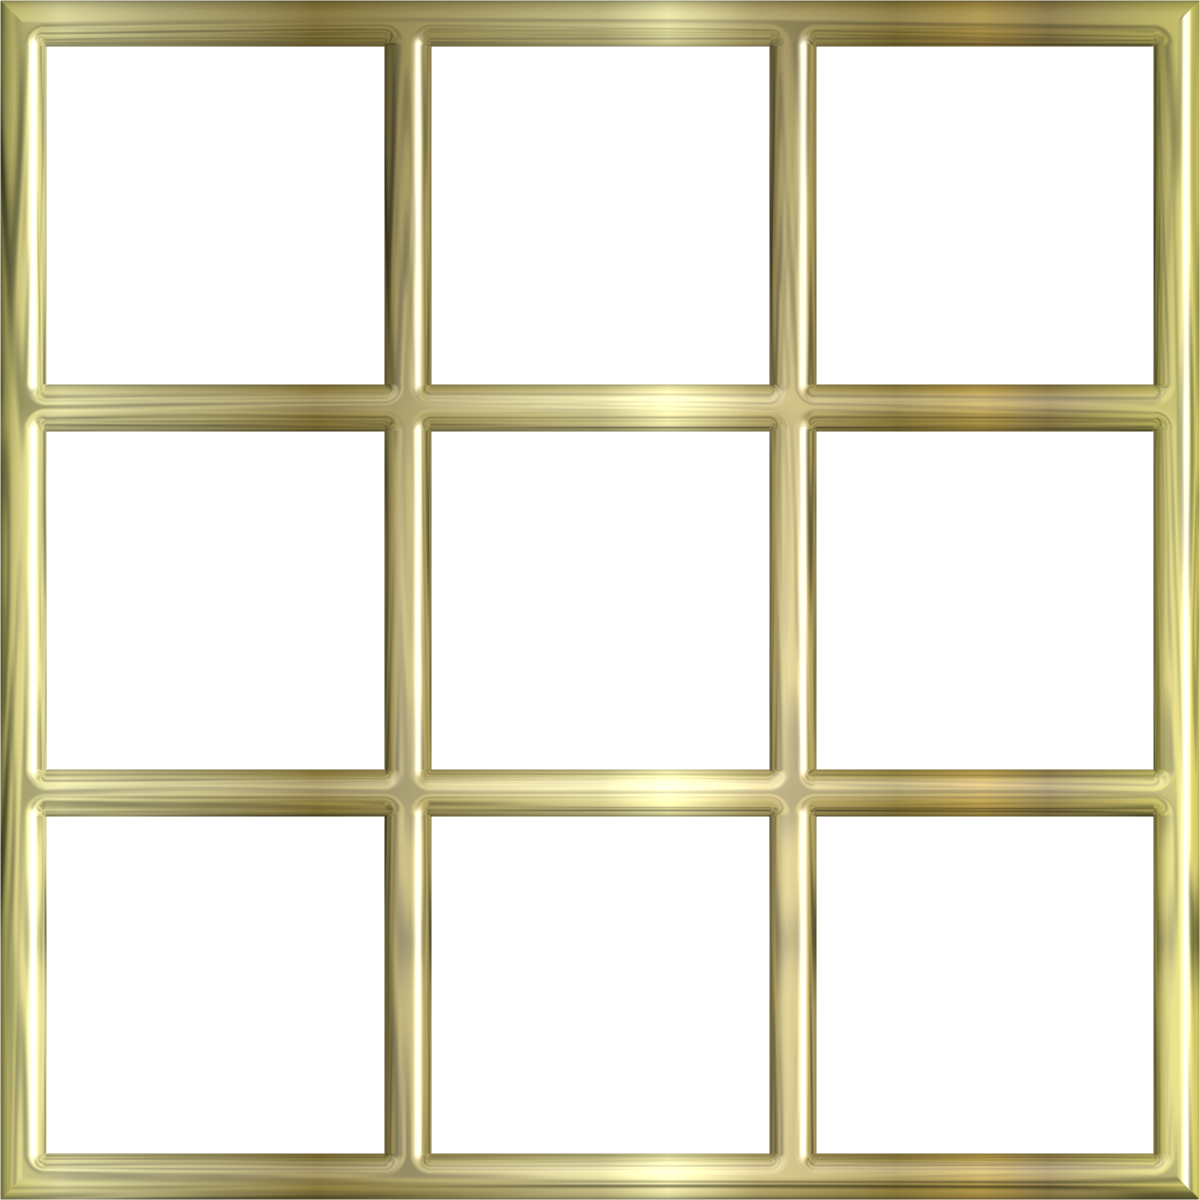 Windowframe picture frame clipart vector freeuse download Top Frame Border Traditional Thai Golden Transparent Window ... vector freeuse download